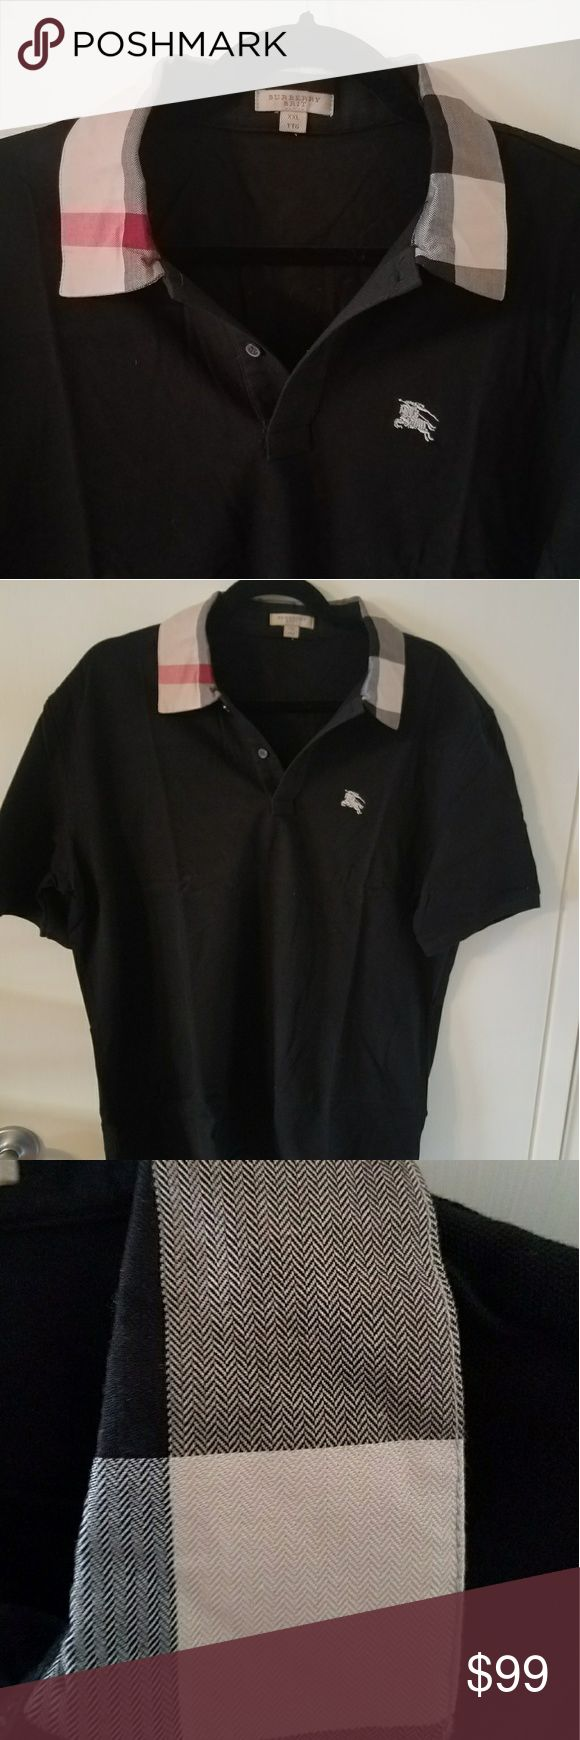 "100% Authentic Burberry Brit polo Shirt XL NEW 100% Authentic Burberry Brit polo Shirt. Very Rare! This is a UK exclusive, not available in the USA!  XL tag But That's in UK Sizing, but Equal to USA Large   BRAND NEW with no tags.  23"" Armpit to armpit. Please compare.  Better Price through PPal Text me  Eric 925-984-1655  Low-ball offers will be ignored, sorry no trades  If you have an offer, make an offer, don't comment and ask if I'll take a certain amount.  Thanks Burberry Shirts"